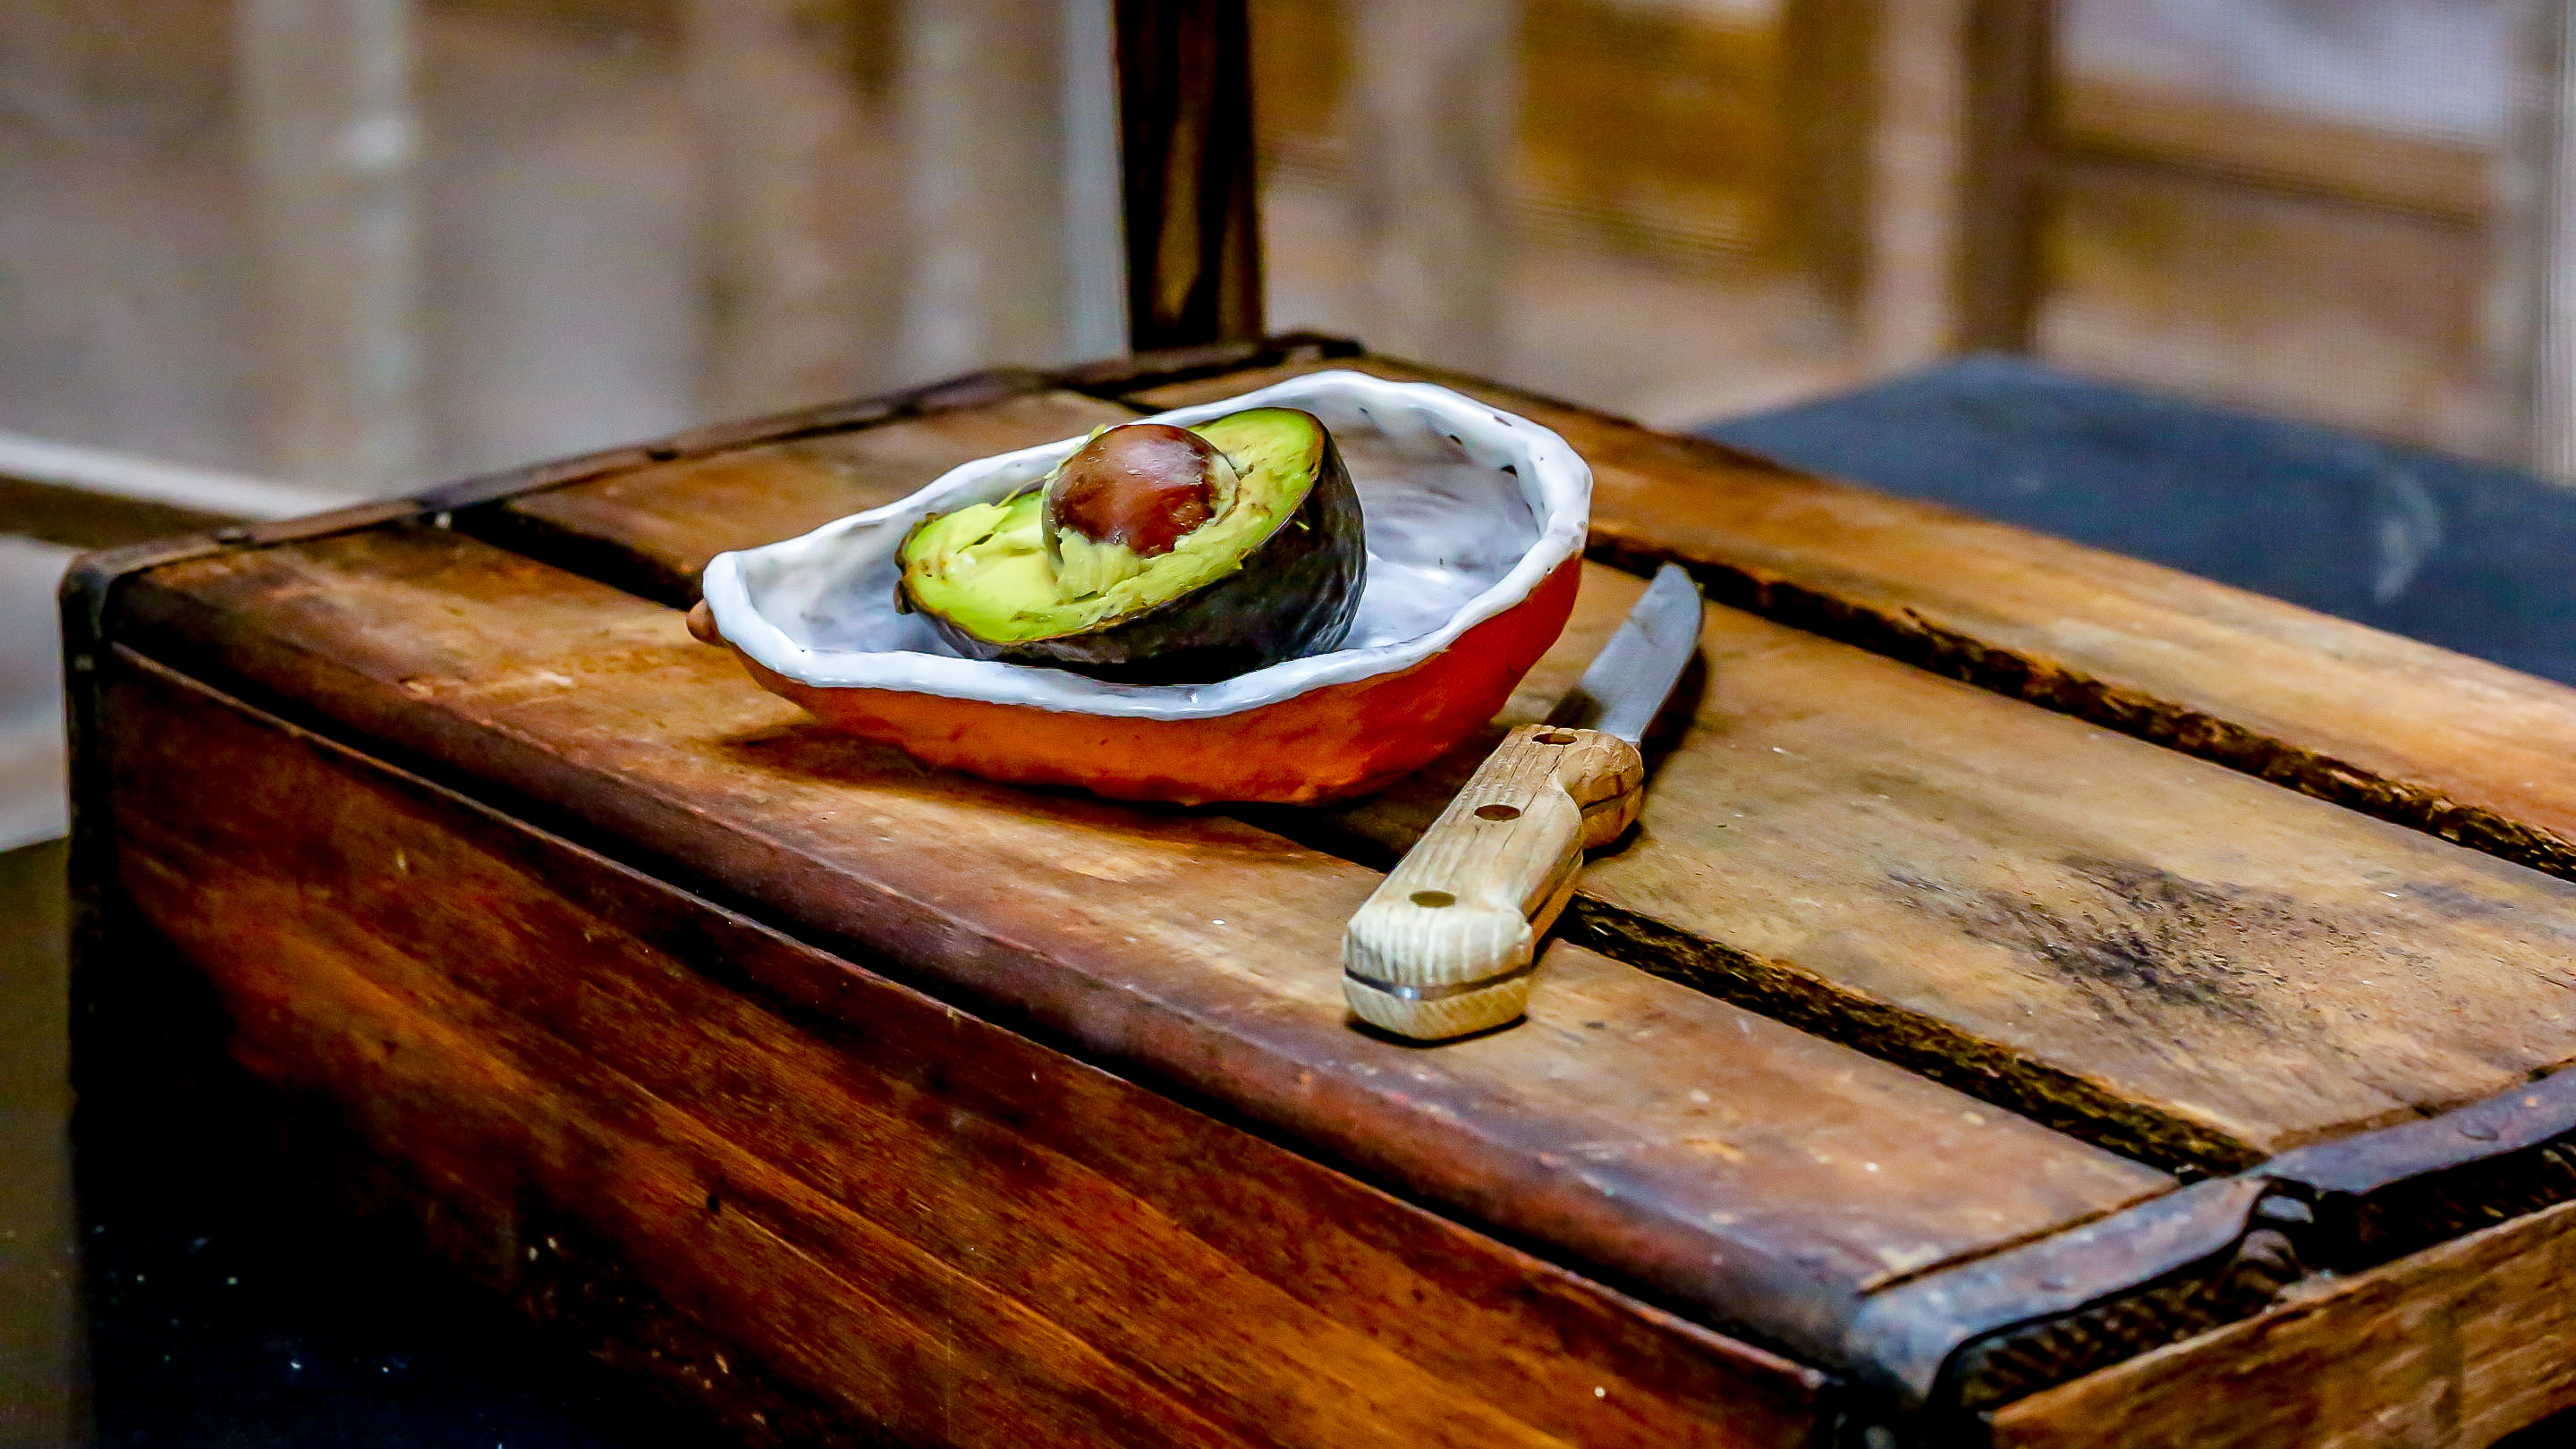 Cool Waters handmade avacado clay dishes